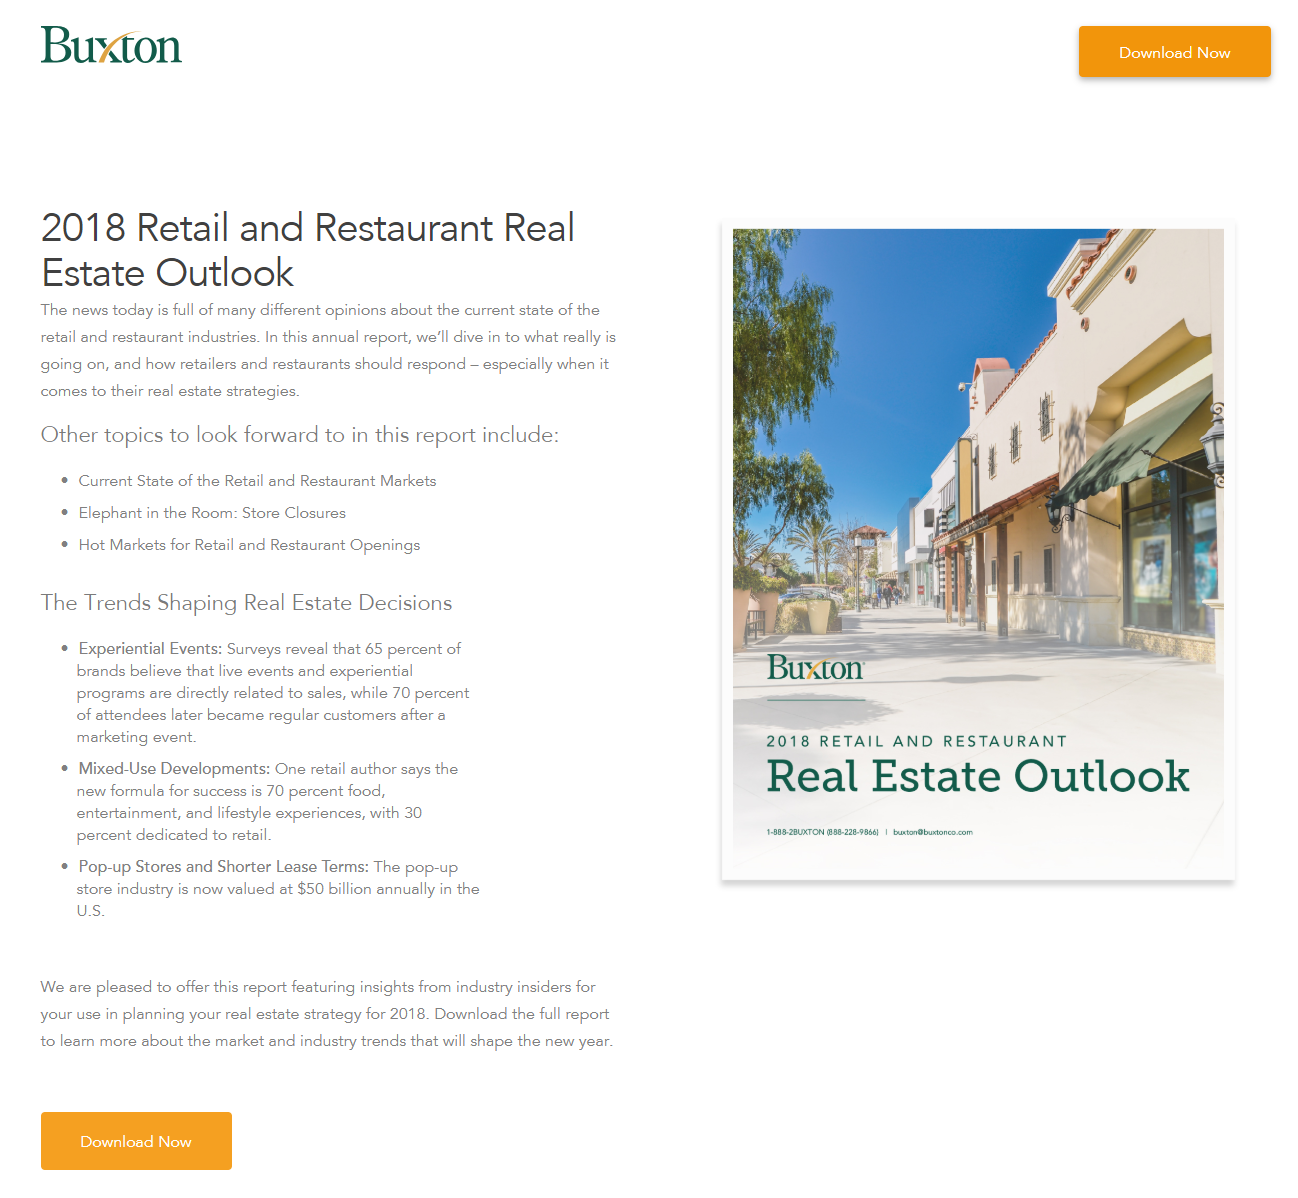 buxton landing page download real estate report